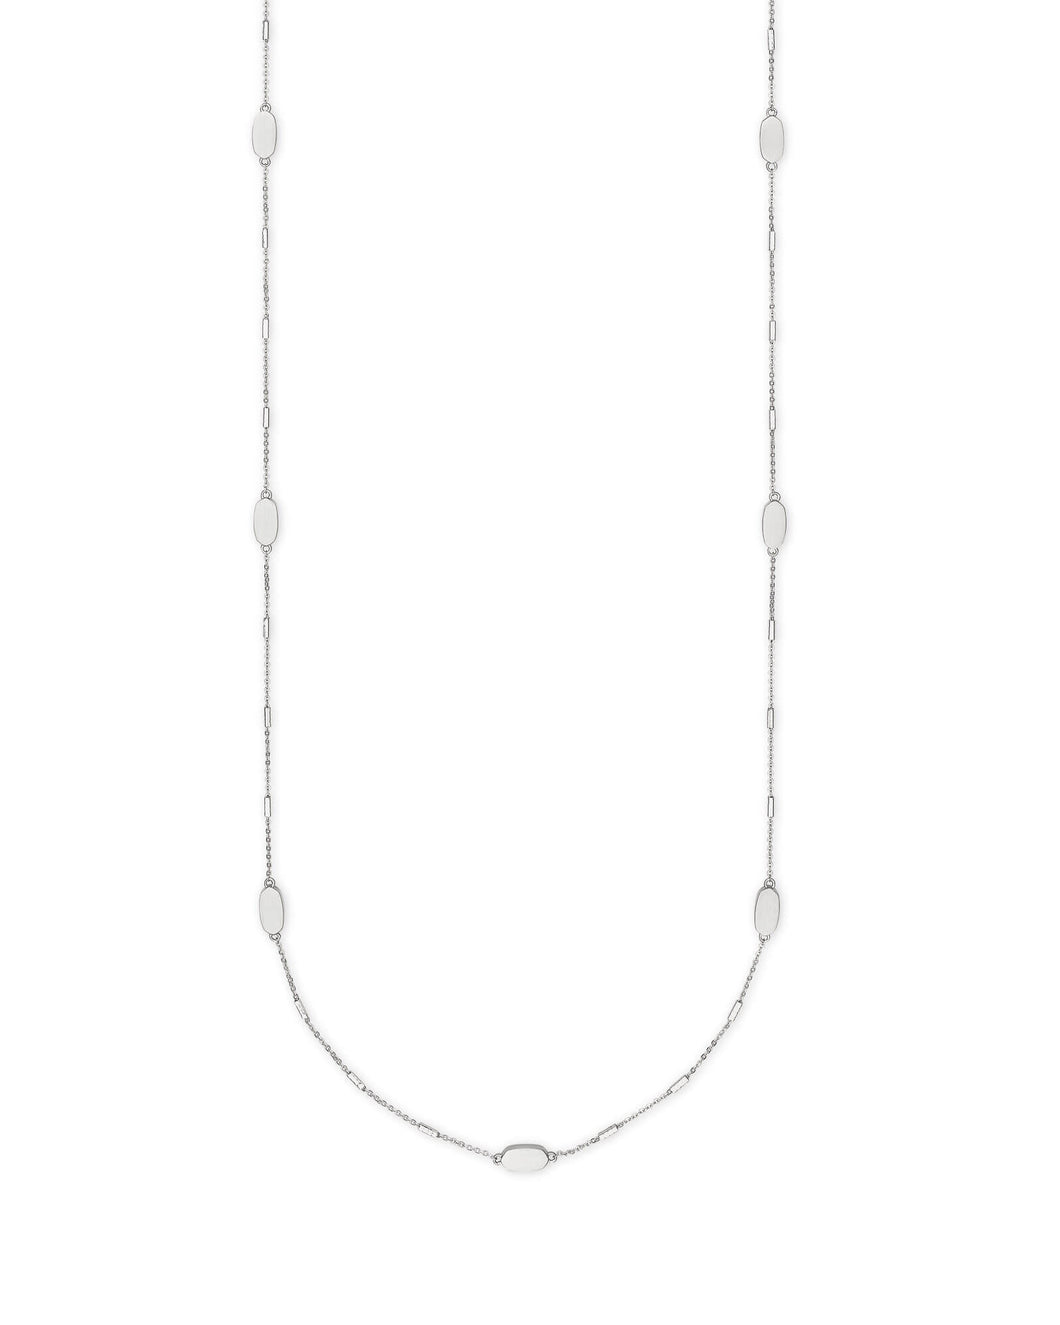 Franklin Long Necklace in Silver